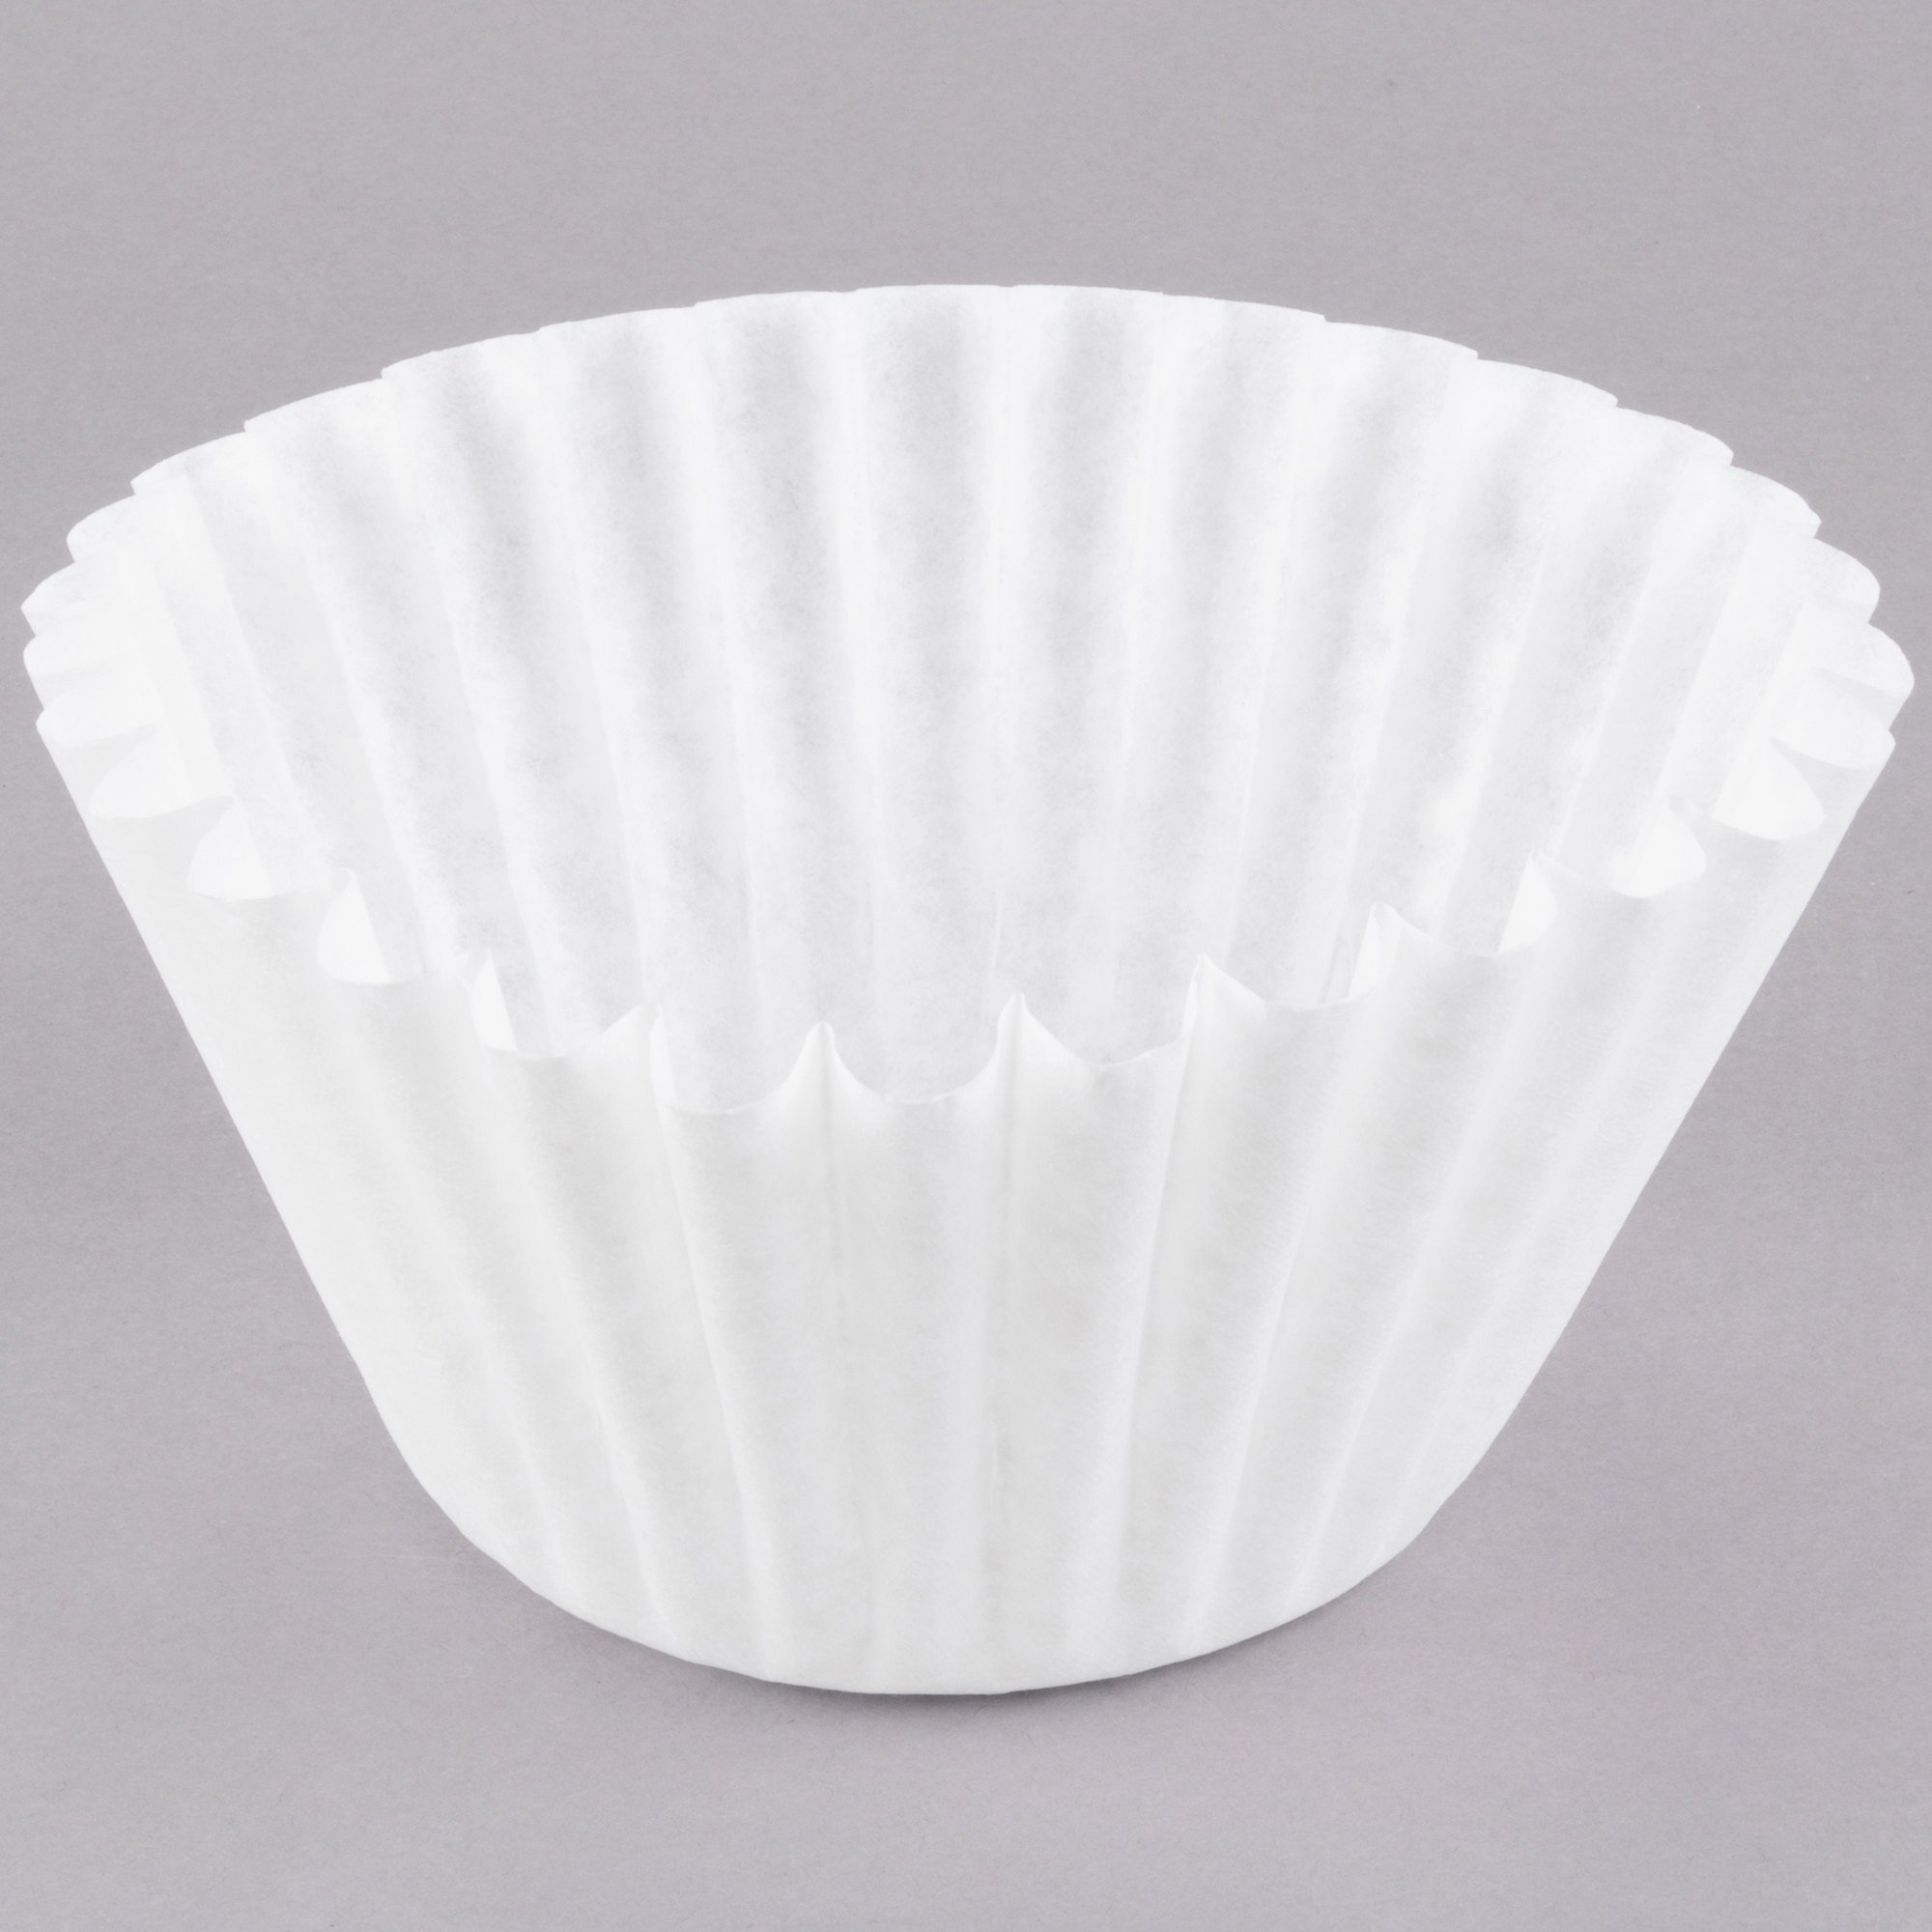 Grindmaster ABB1.5WP 13'' x 5'' Coffee Filter for ABB1.5P and ABB1.5SS Shuttle Coffee Brewer Baskets - 500/Case